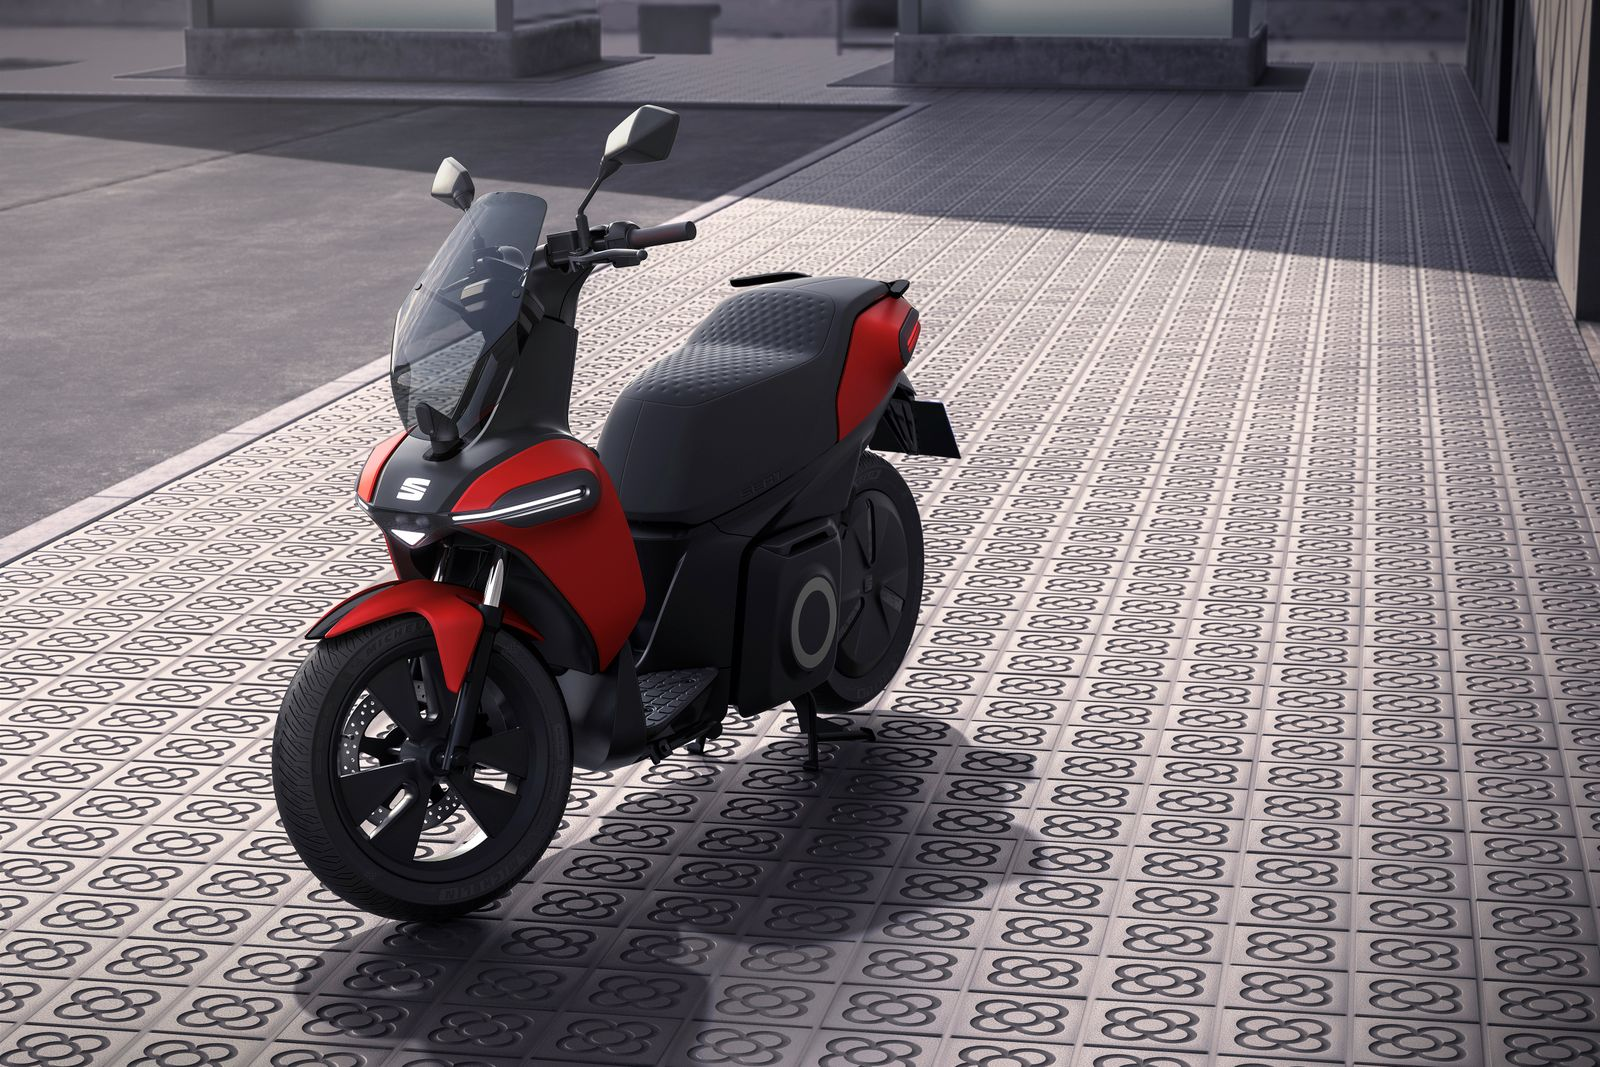 SEAT Scooter concept